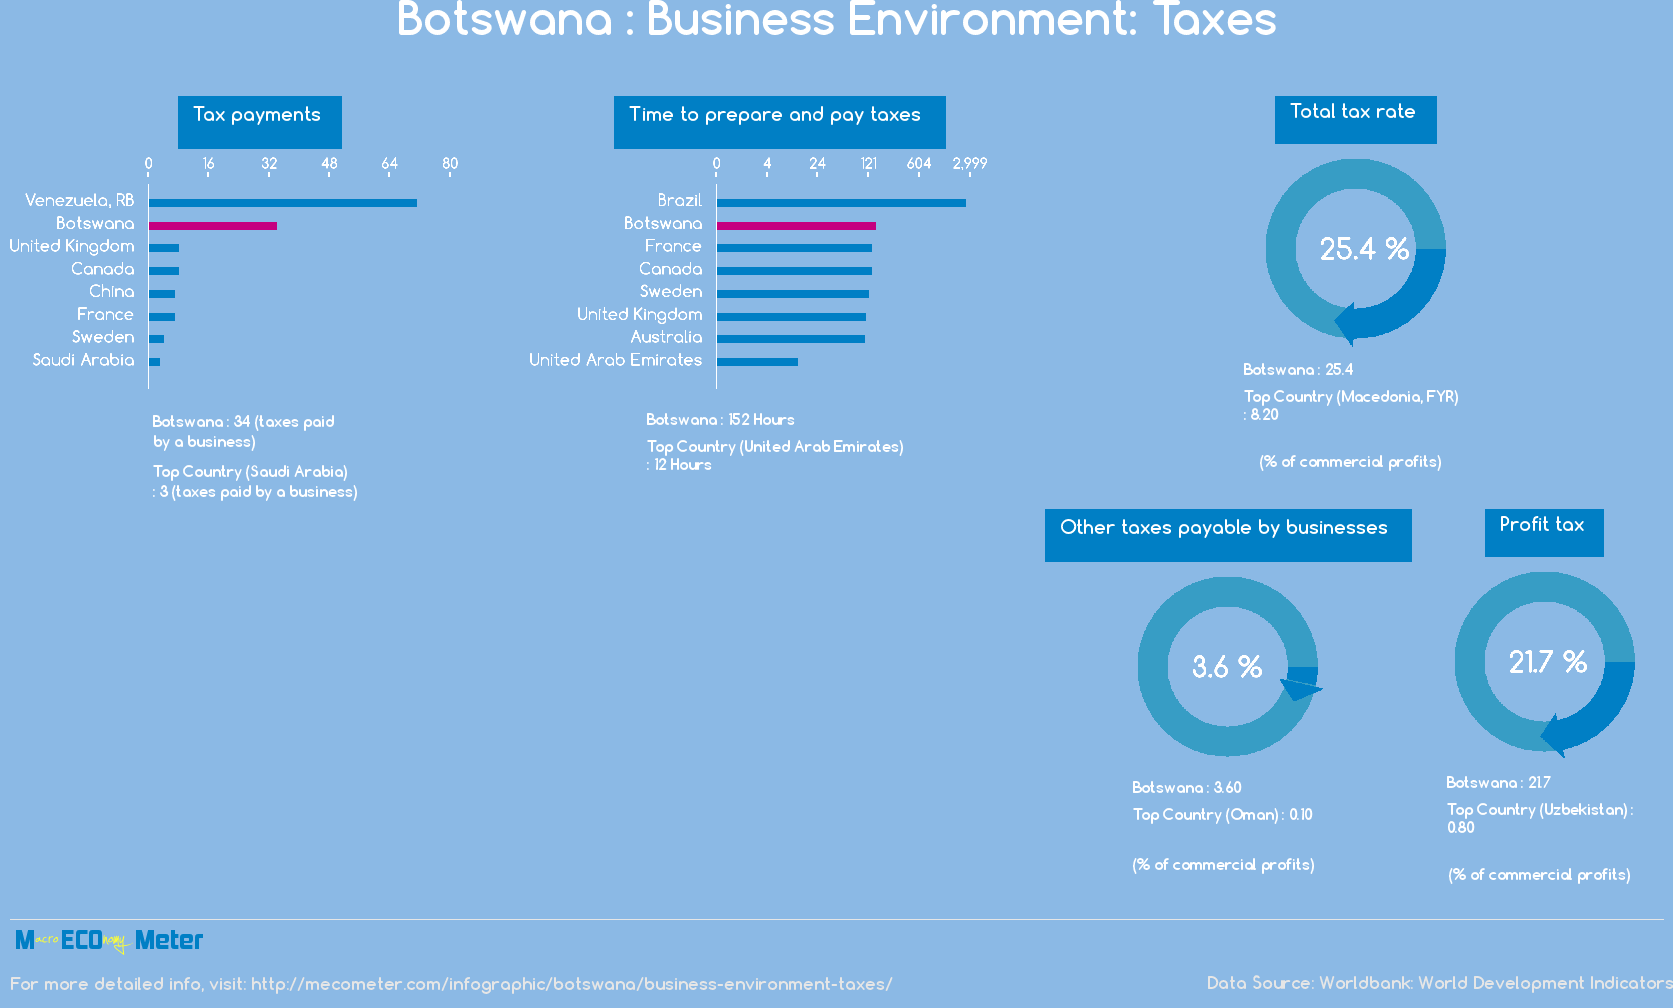 Botswana : Business Environment: Taxes